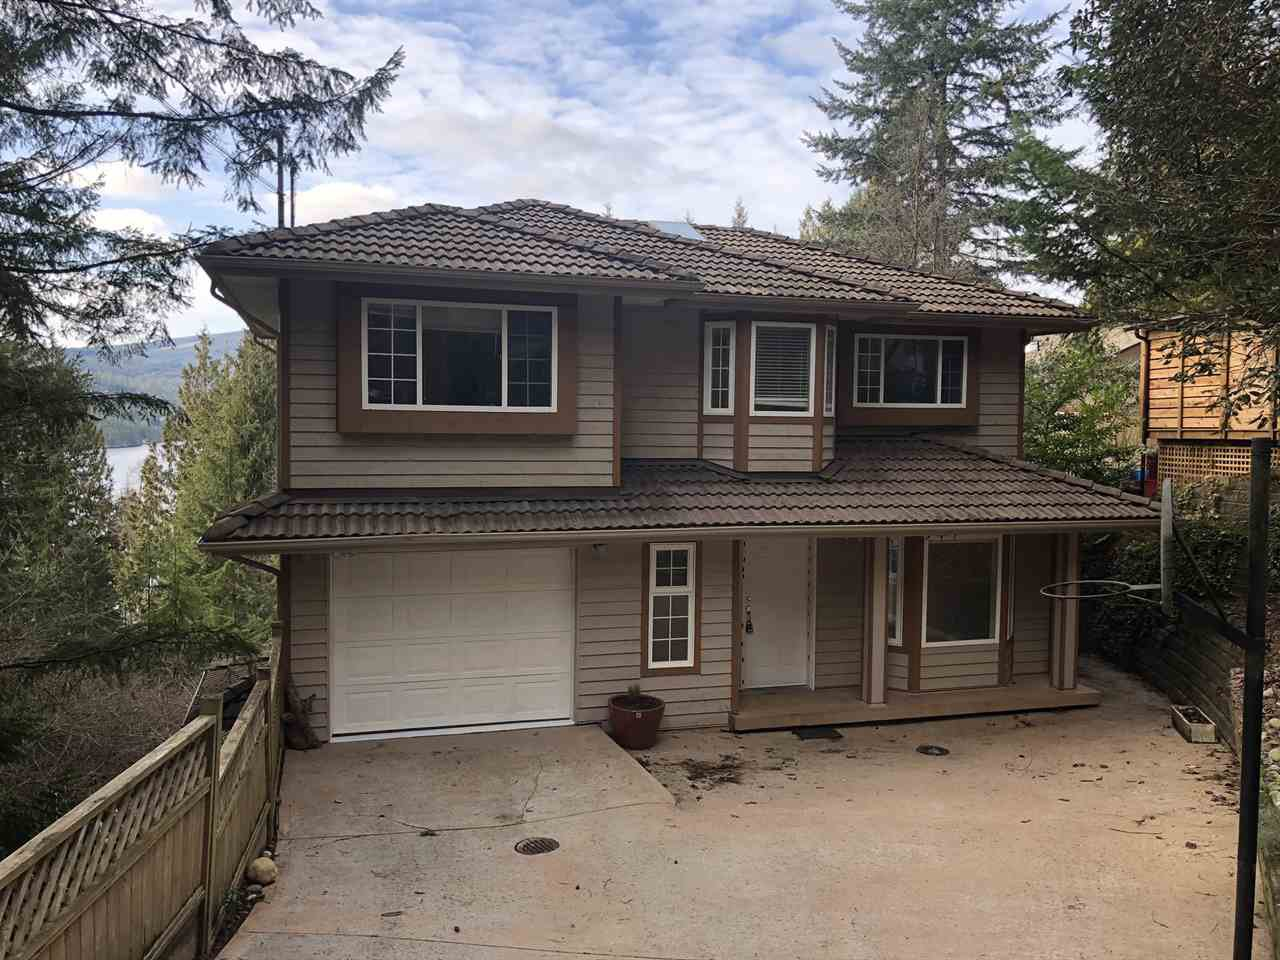 "Main Photo: 7035 SKANA Crescent in Sechelt: Sechelt District House for sale in ""SANDY HOOK"" (Sunshine Coast)  : MLS®# R2430175"